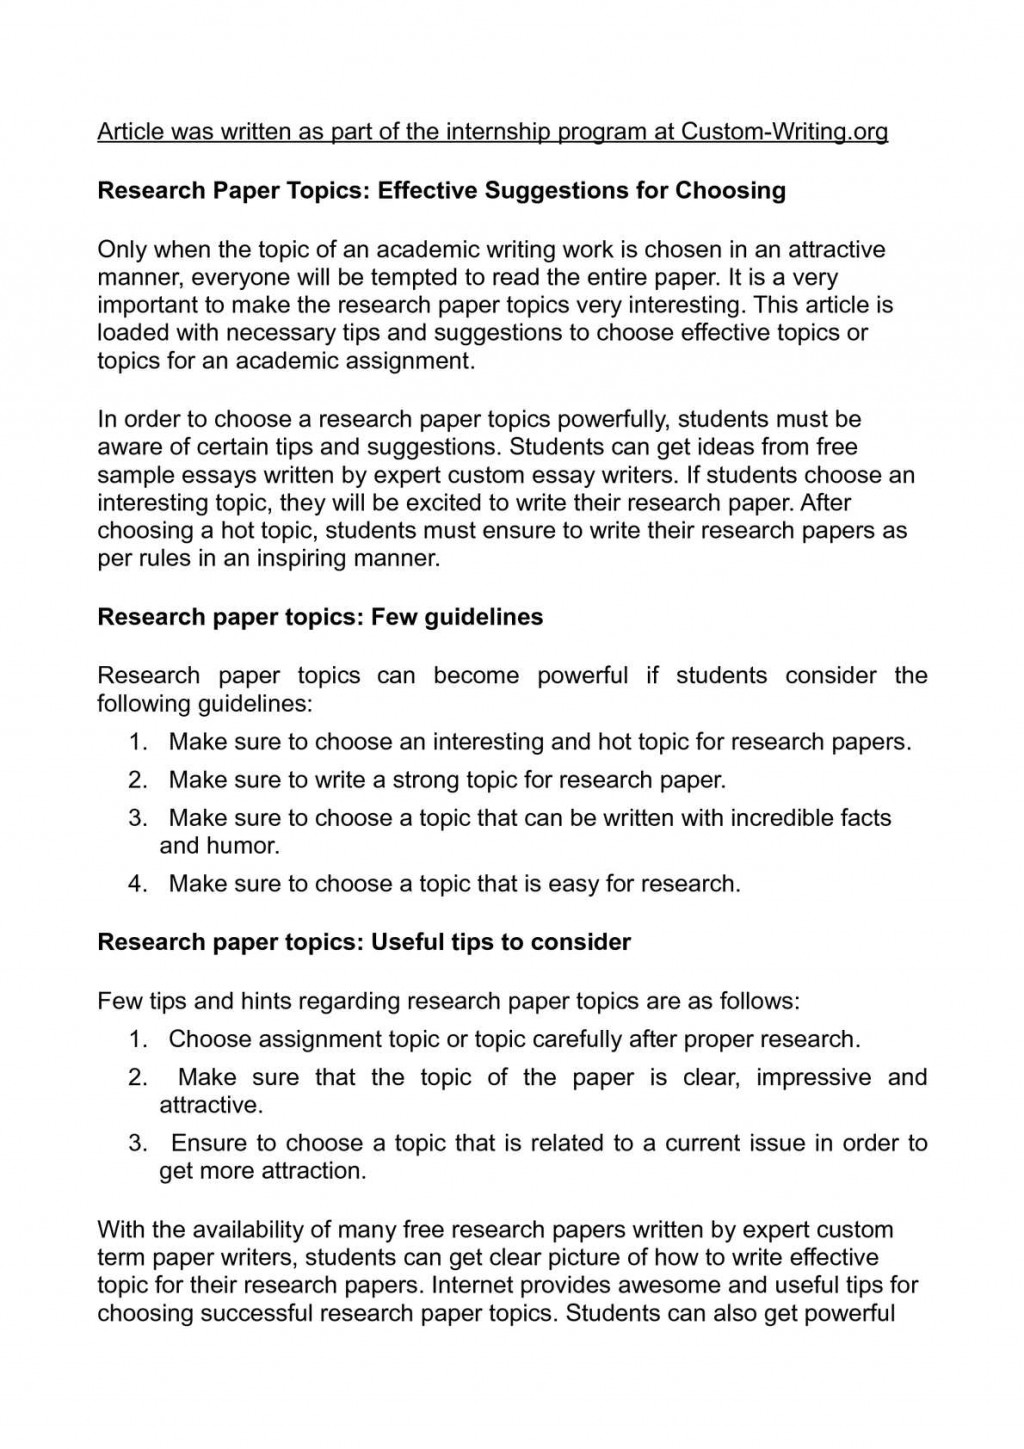 016 Easy Research Paper Topics Fantastic To Write About For Computer Science Large